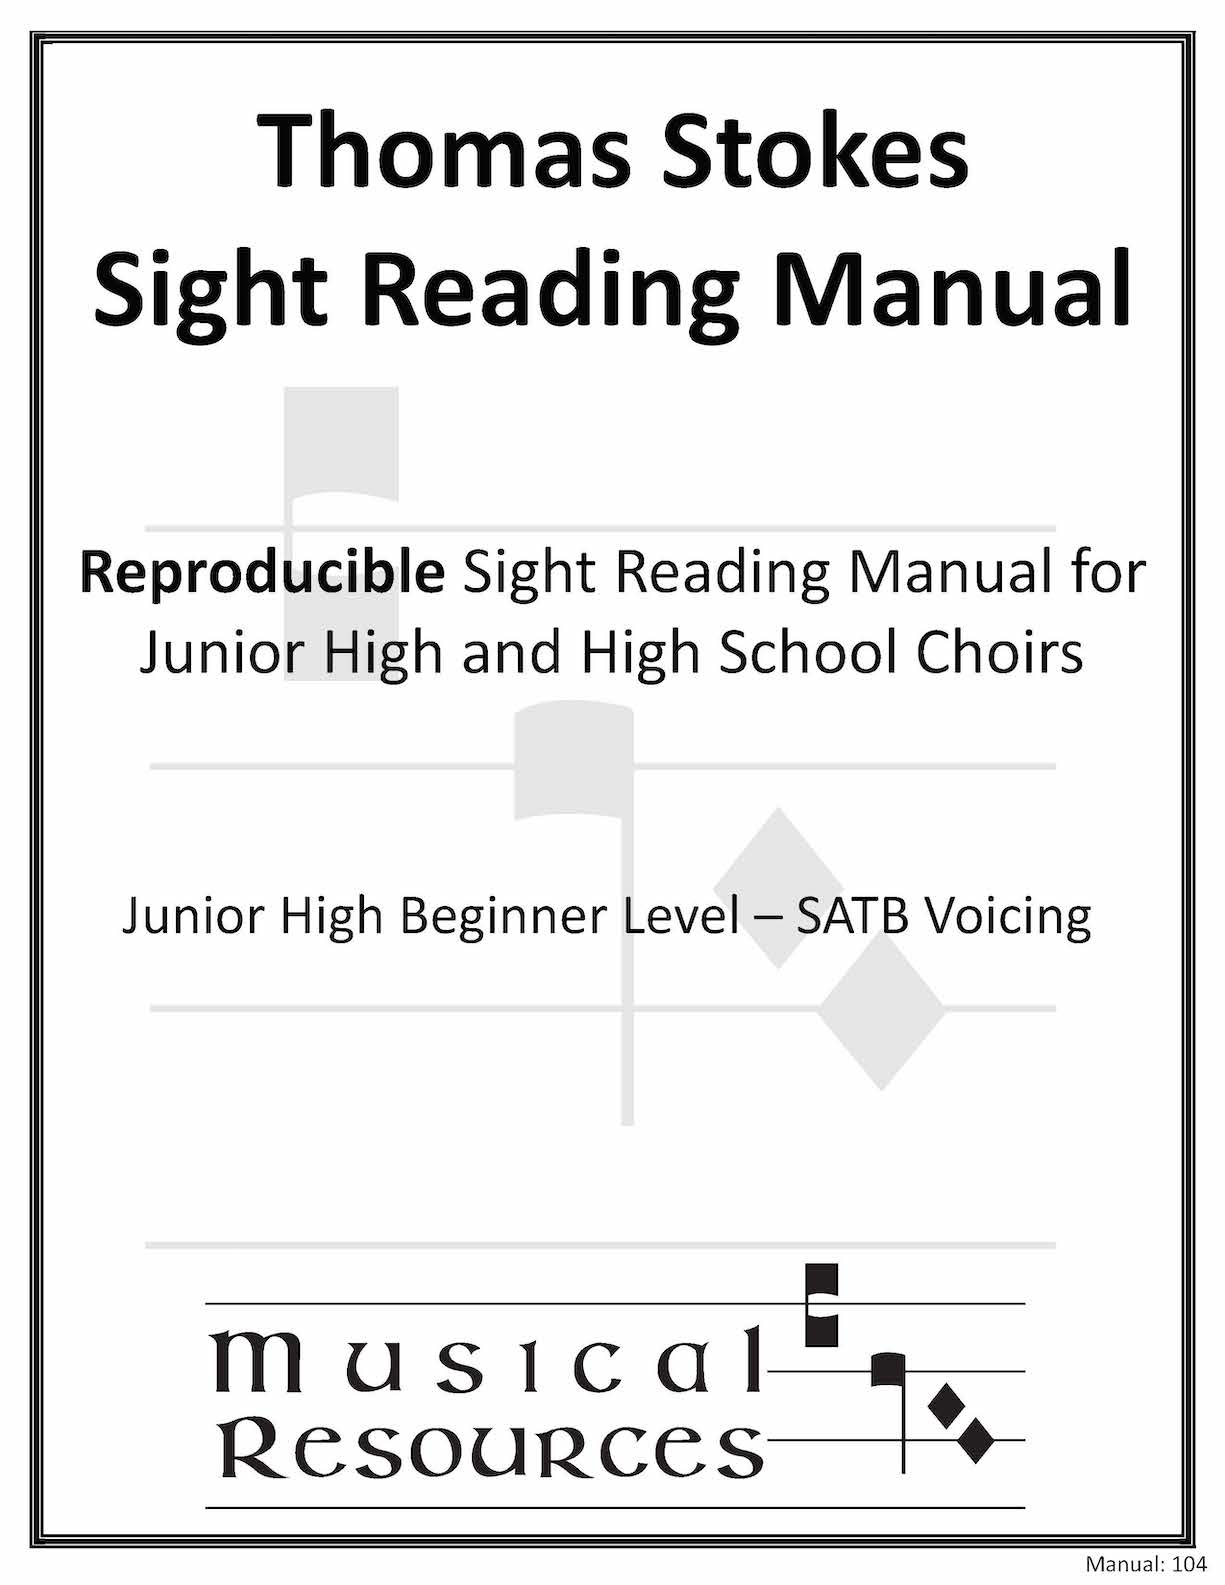 Picture of (Digital) Thomas Stokes Sightreading Manual #104 - SATB Junior High Beginner